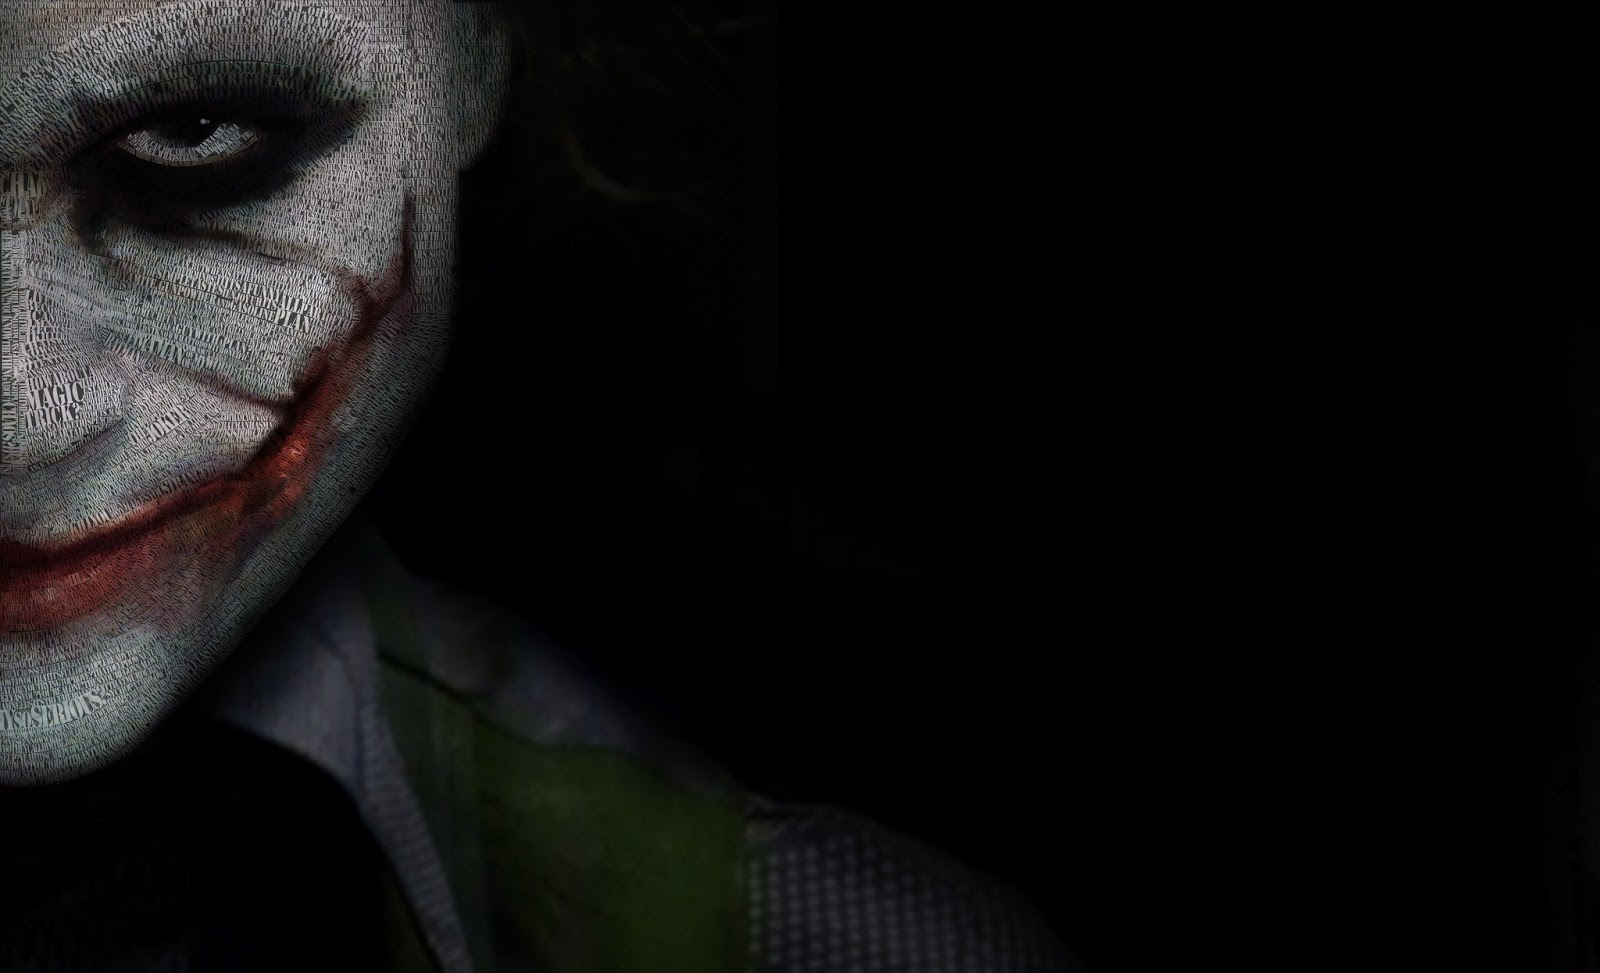 Joker Hd Wallpapers: HDMOU: TOP 20 THE JOKER WALLPAPERS IN HD